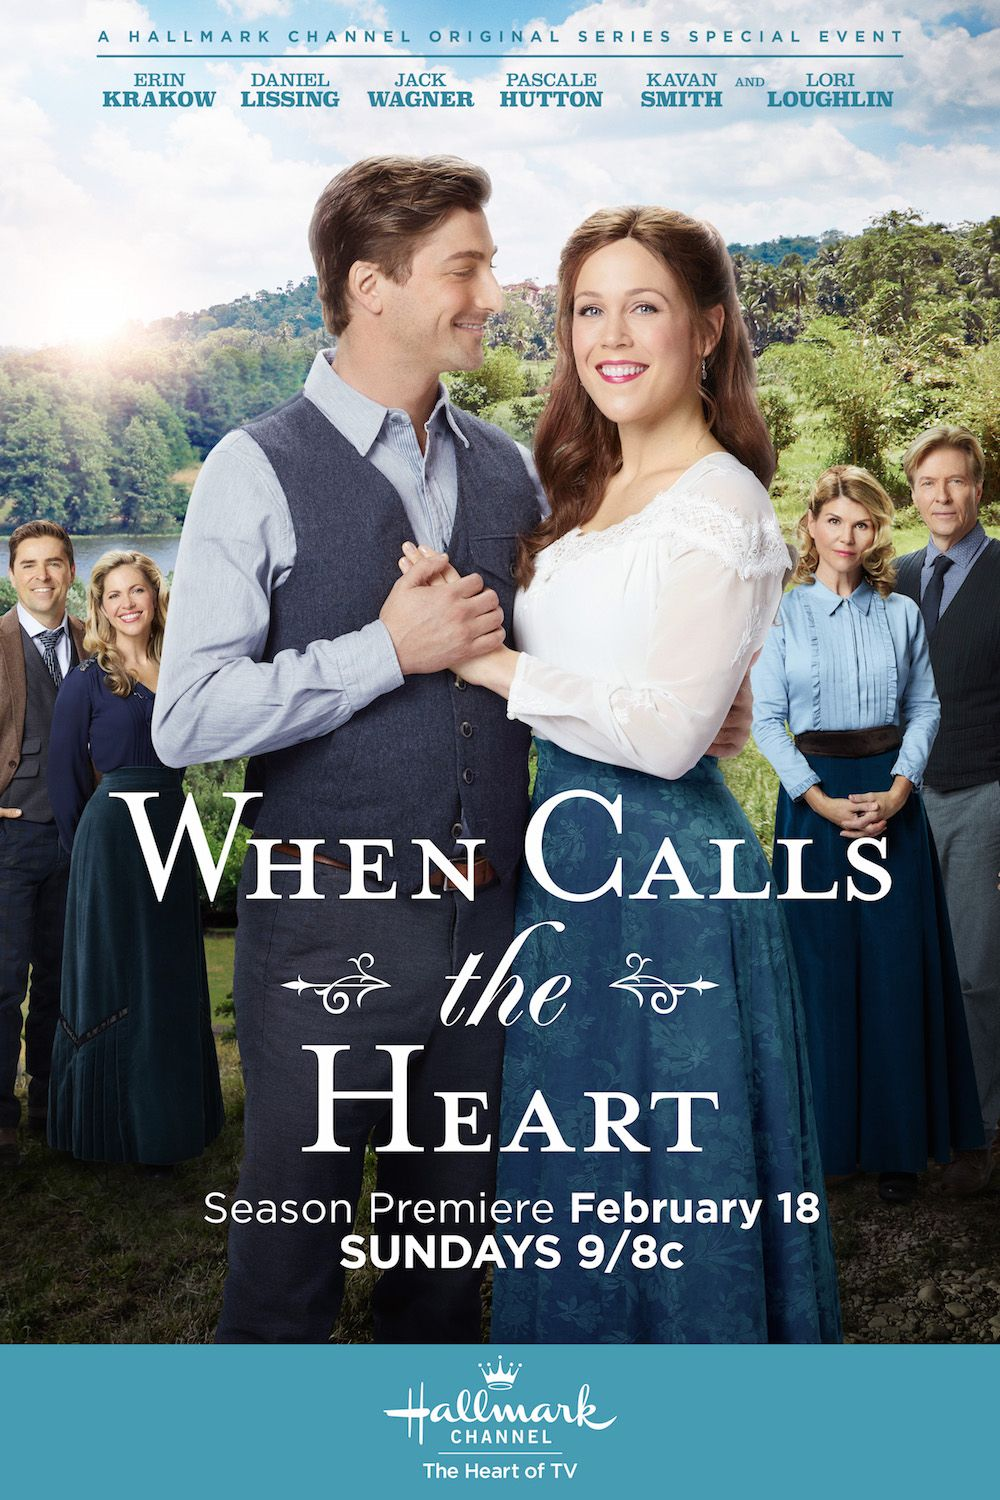 https://vignette.wikia.nocookie.net/doblaje/images/0/0b/Whencallstheheart.jpg/revision/latest?cb=20181223211227&path-prefix=es